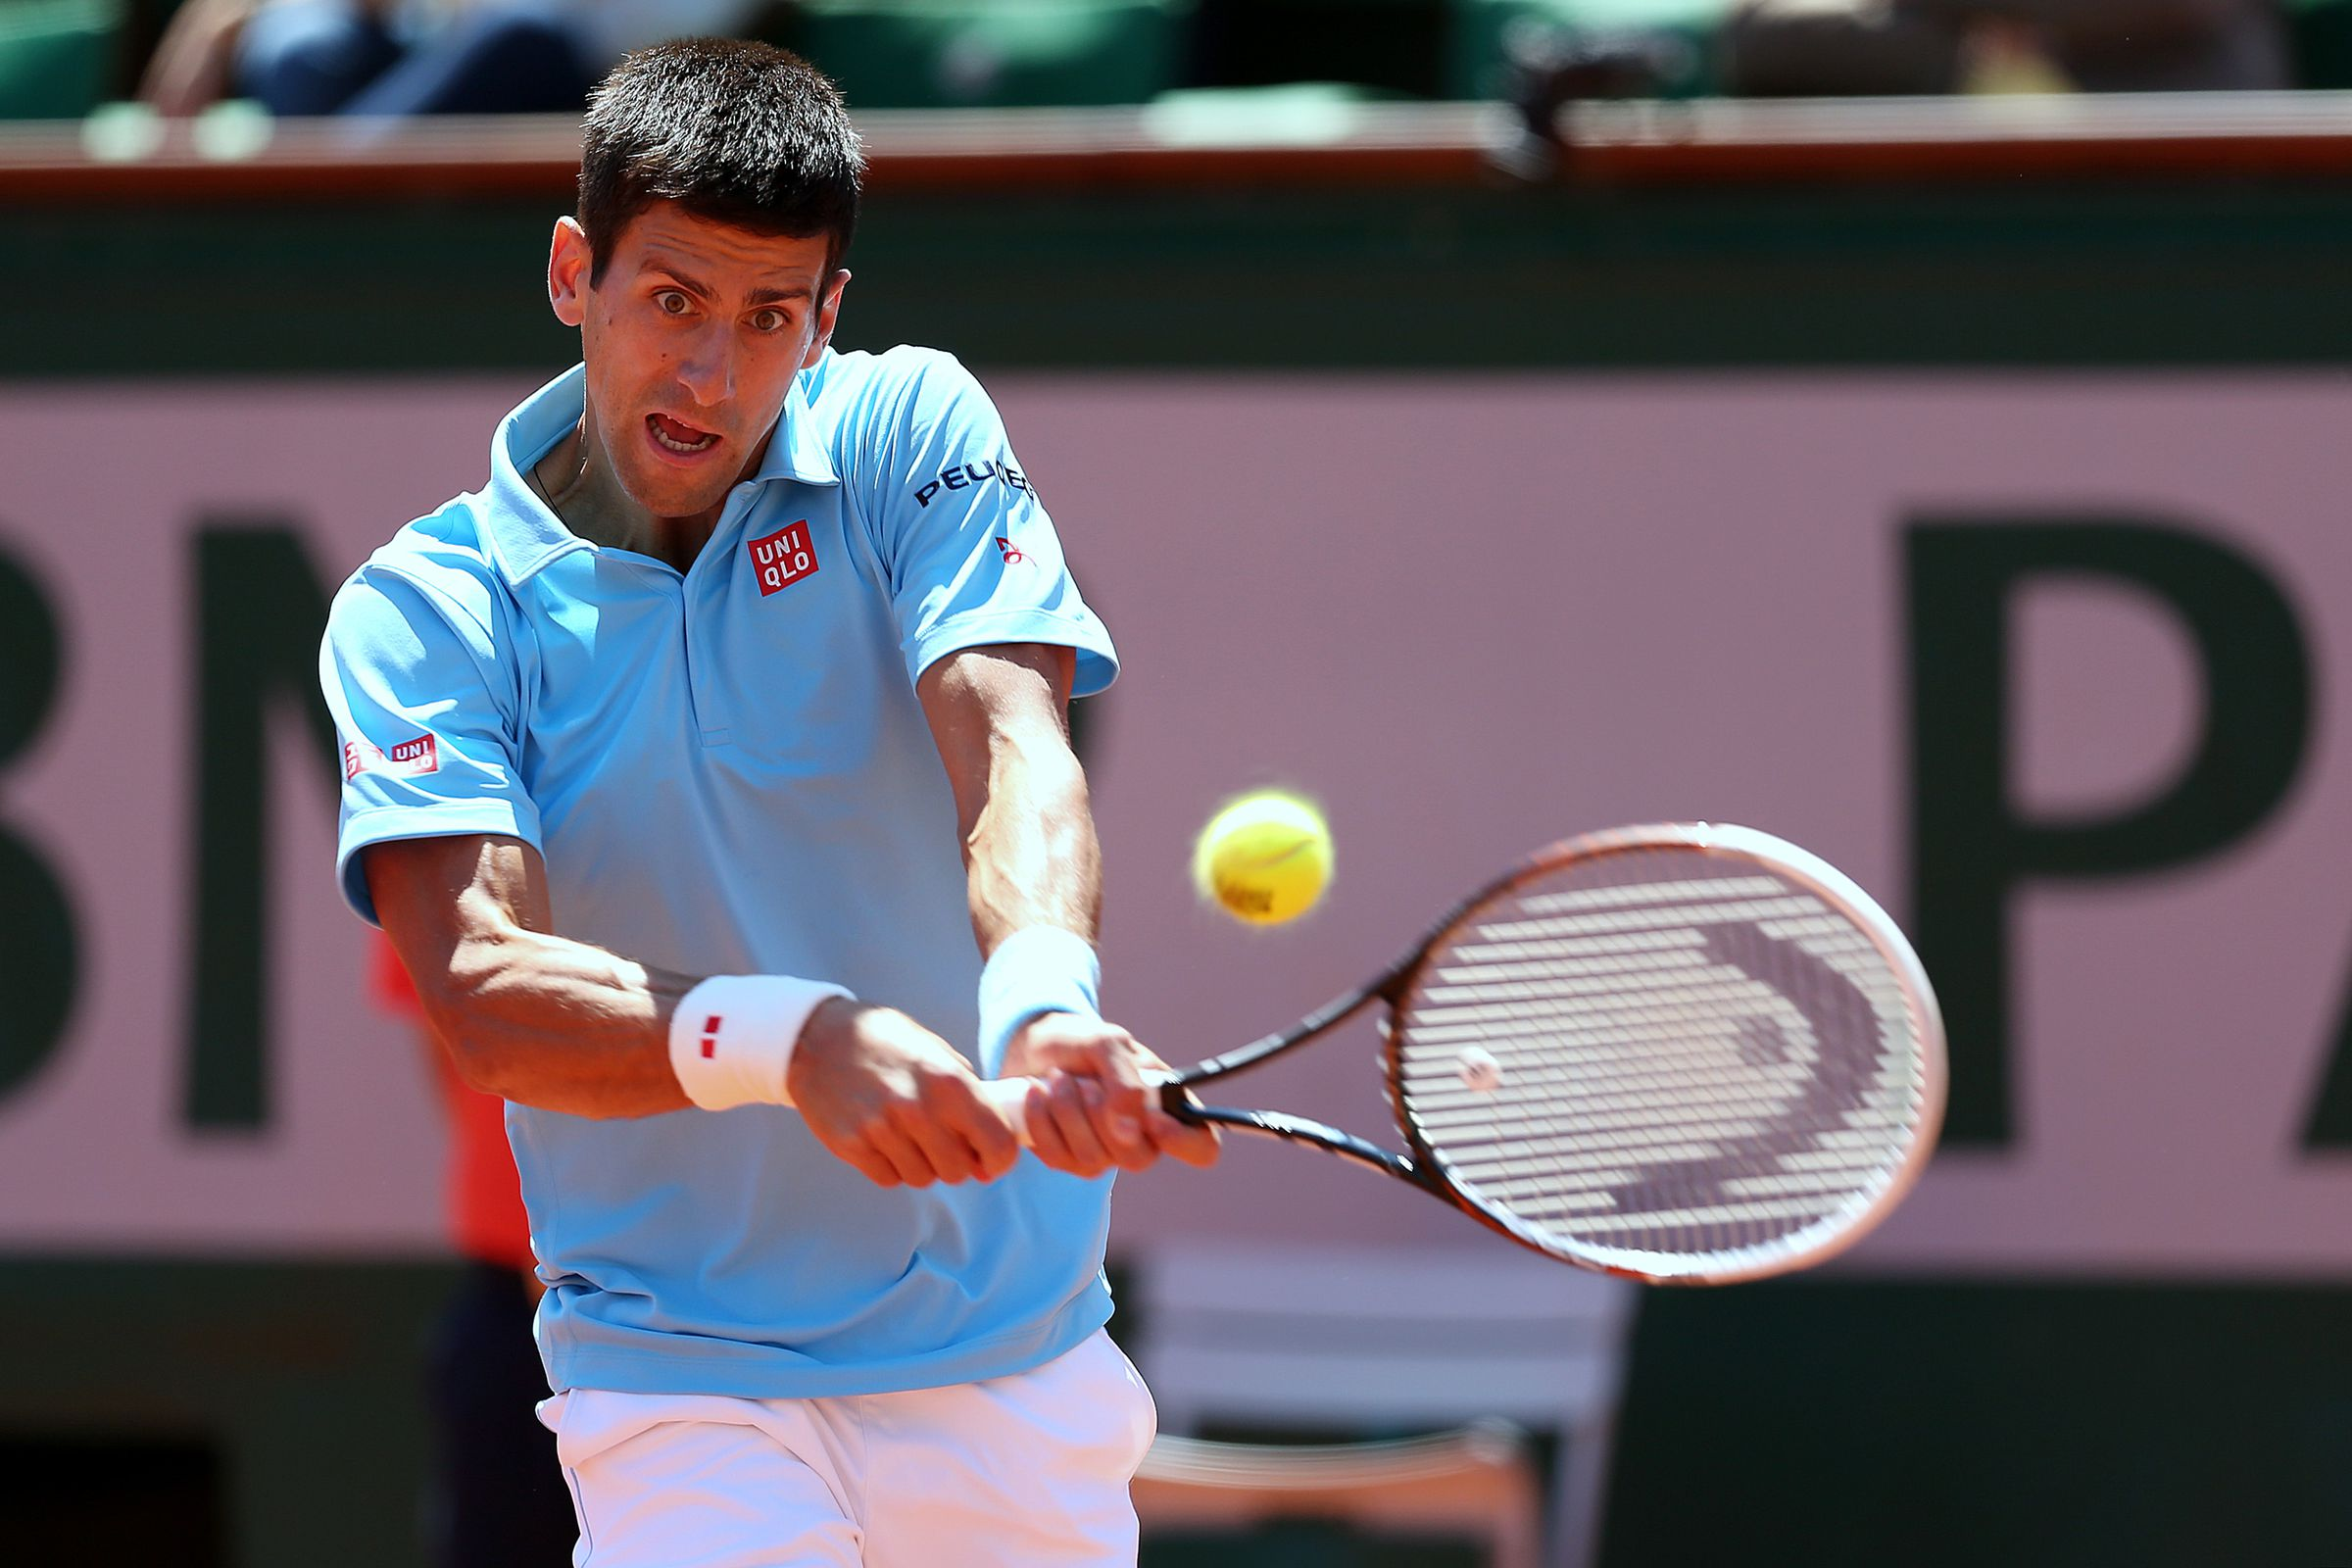 french open 2014 tv schedule and matches for sunday at. Black Bedroom Furniture Sets. Home Design Ideas